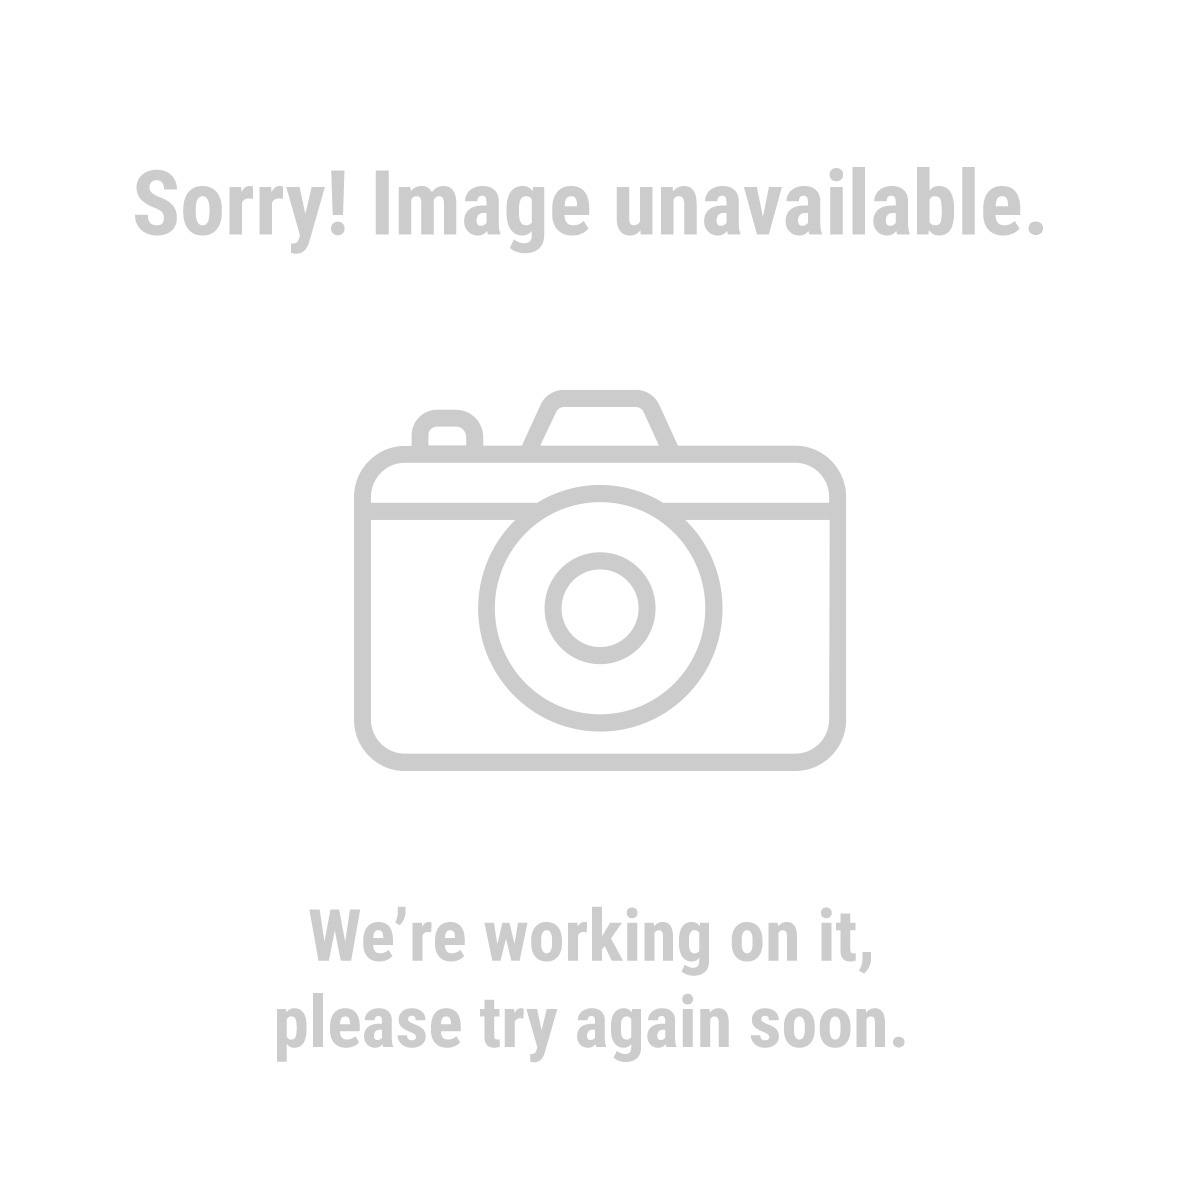 Haul-Master 95896 Low Profile Motorcycle Dolly